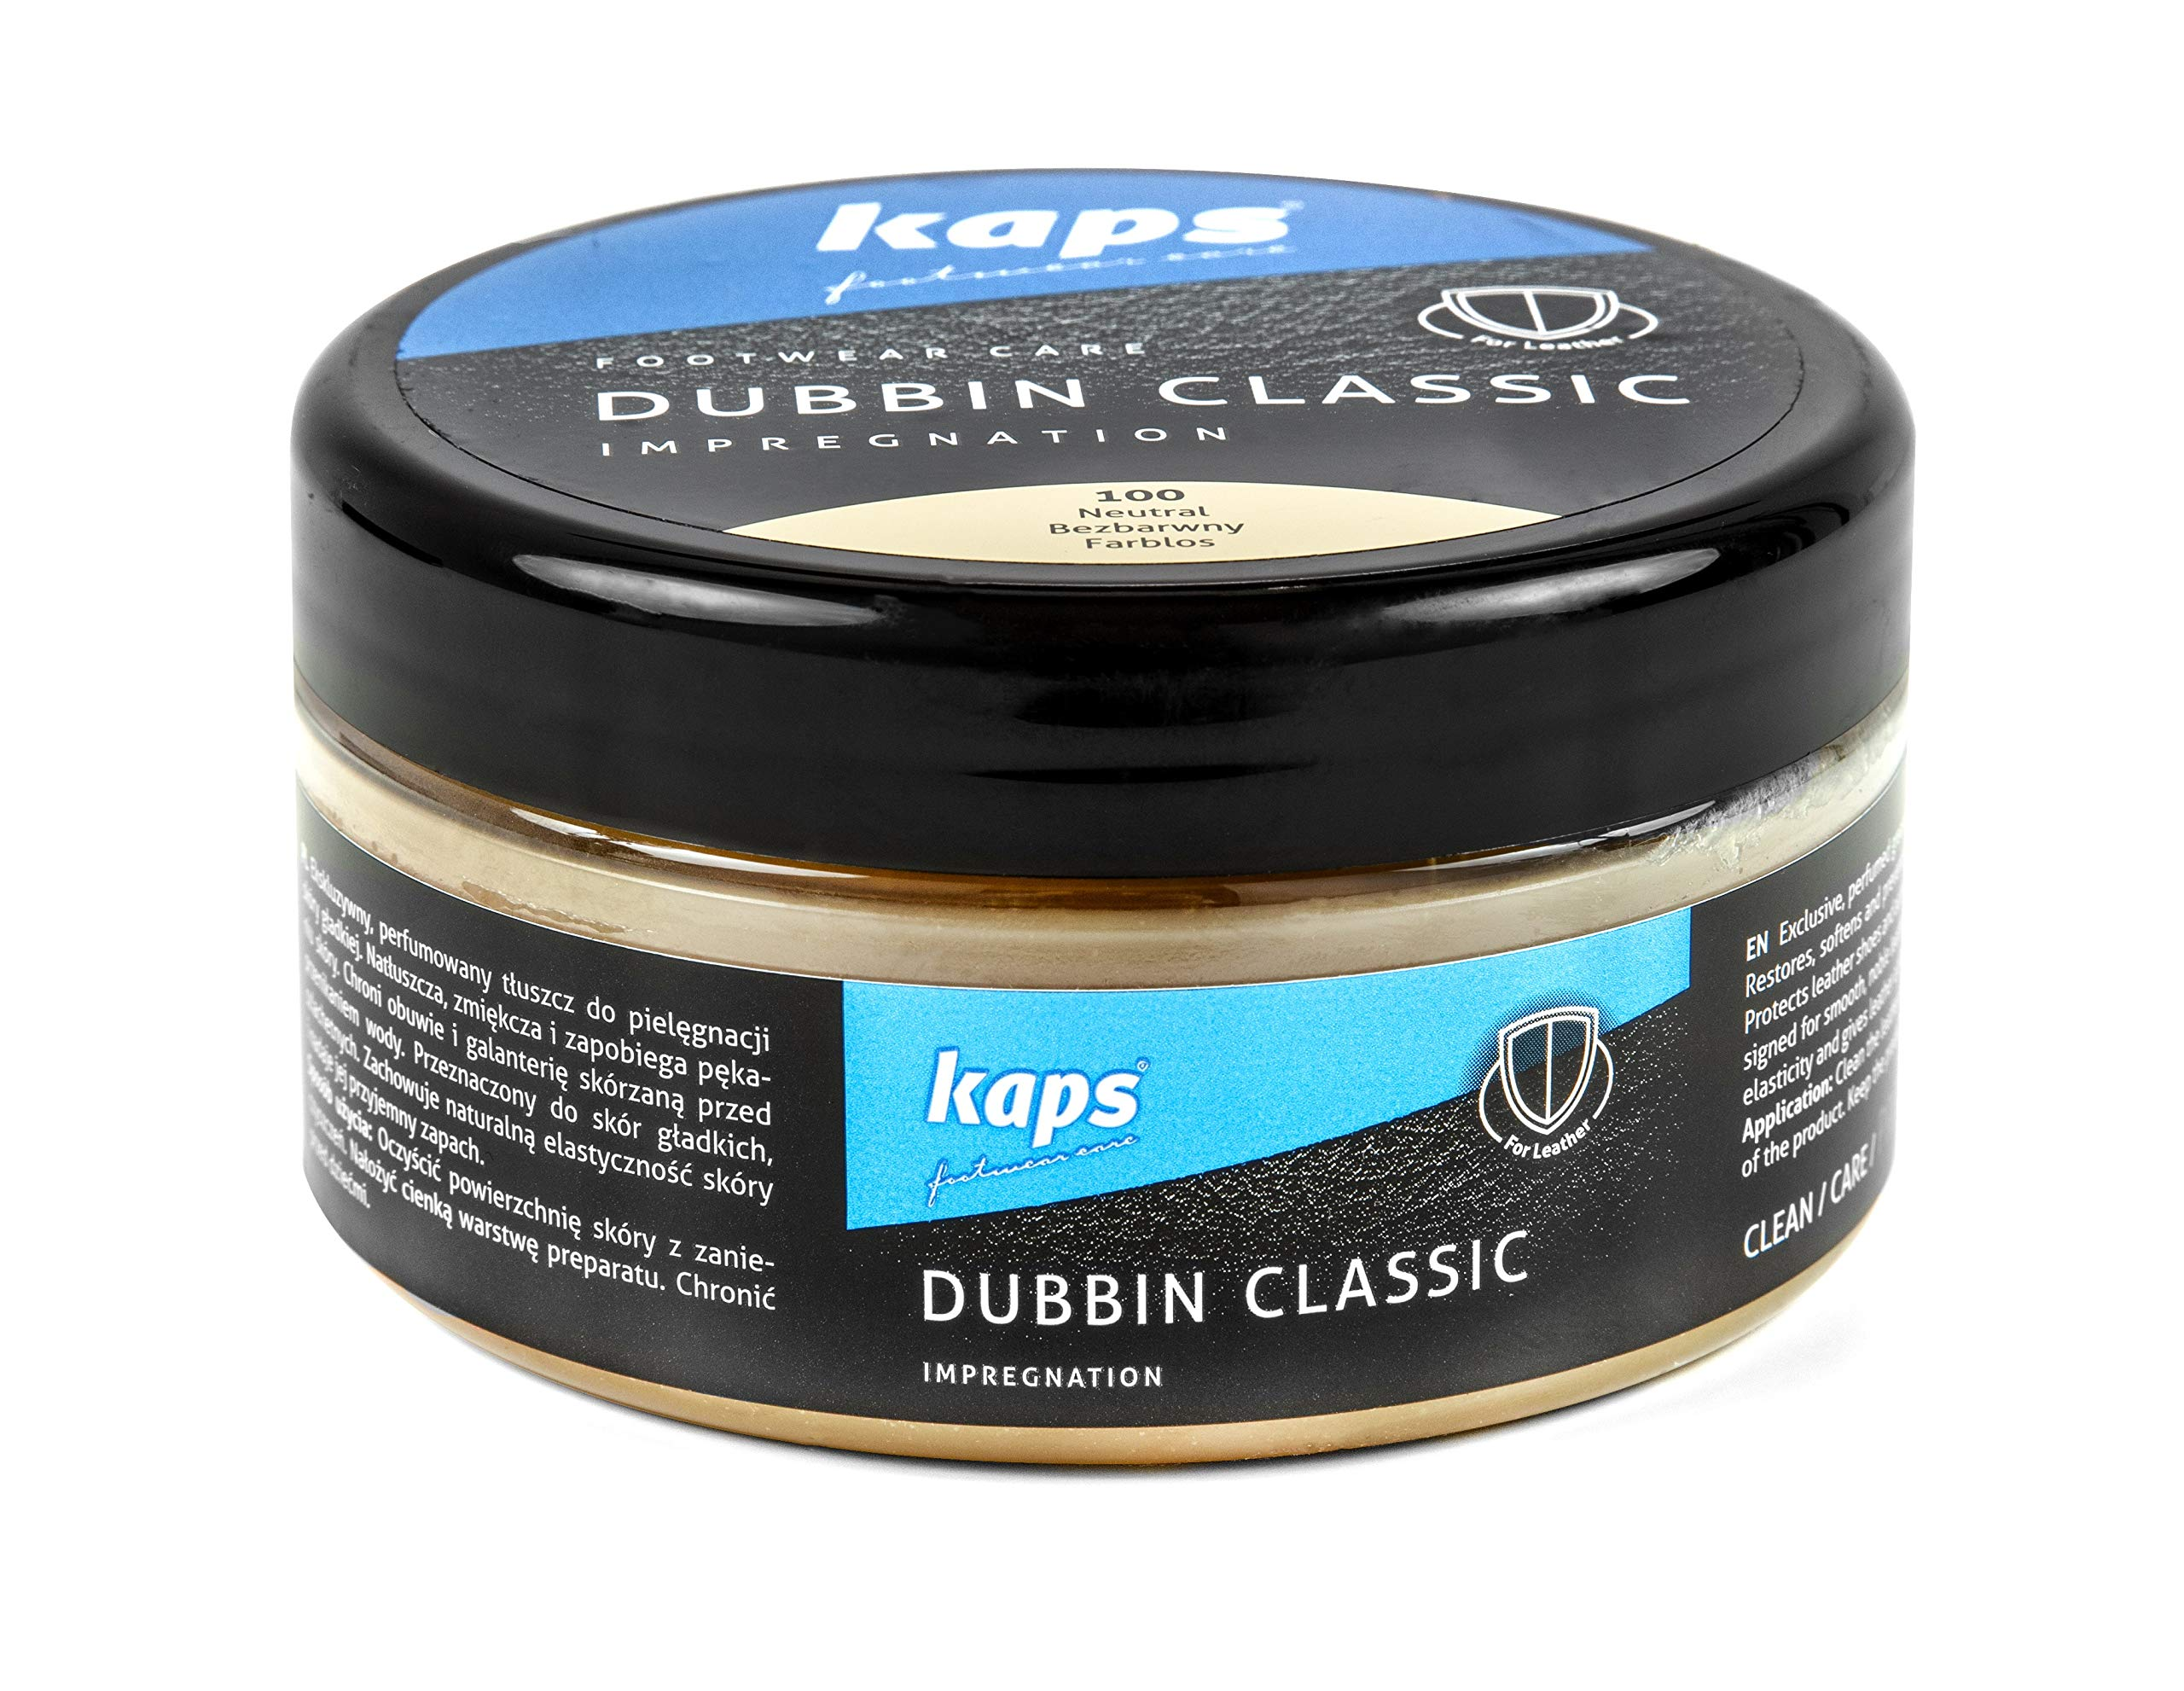 Kaps Wax Grease Dubbin Classic - Waterproofs Softens and Preserves Leather - Leaves Pleasant Fragrance - for Shoes Boots Equestrian Saddles Horse Tack Leather Goods 200 ml - 6.76 fl. oz. by Kaps